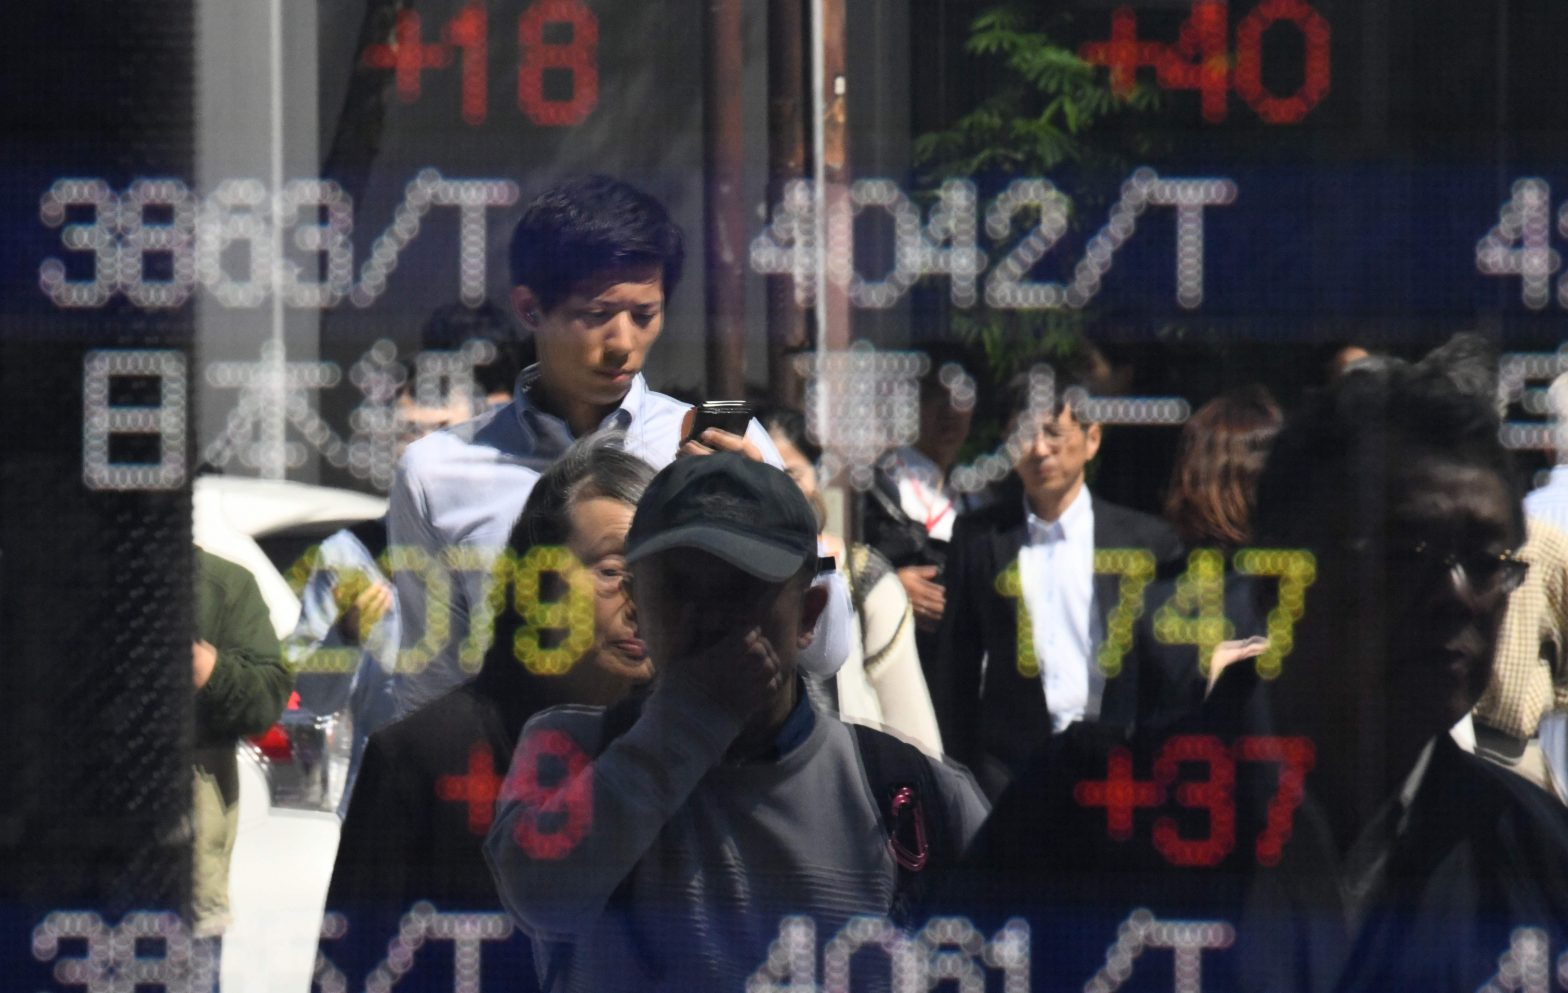 Asia stocks move higher amid US-China trade optimism, S&P 500 record high – CNBC